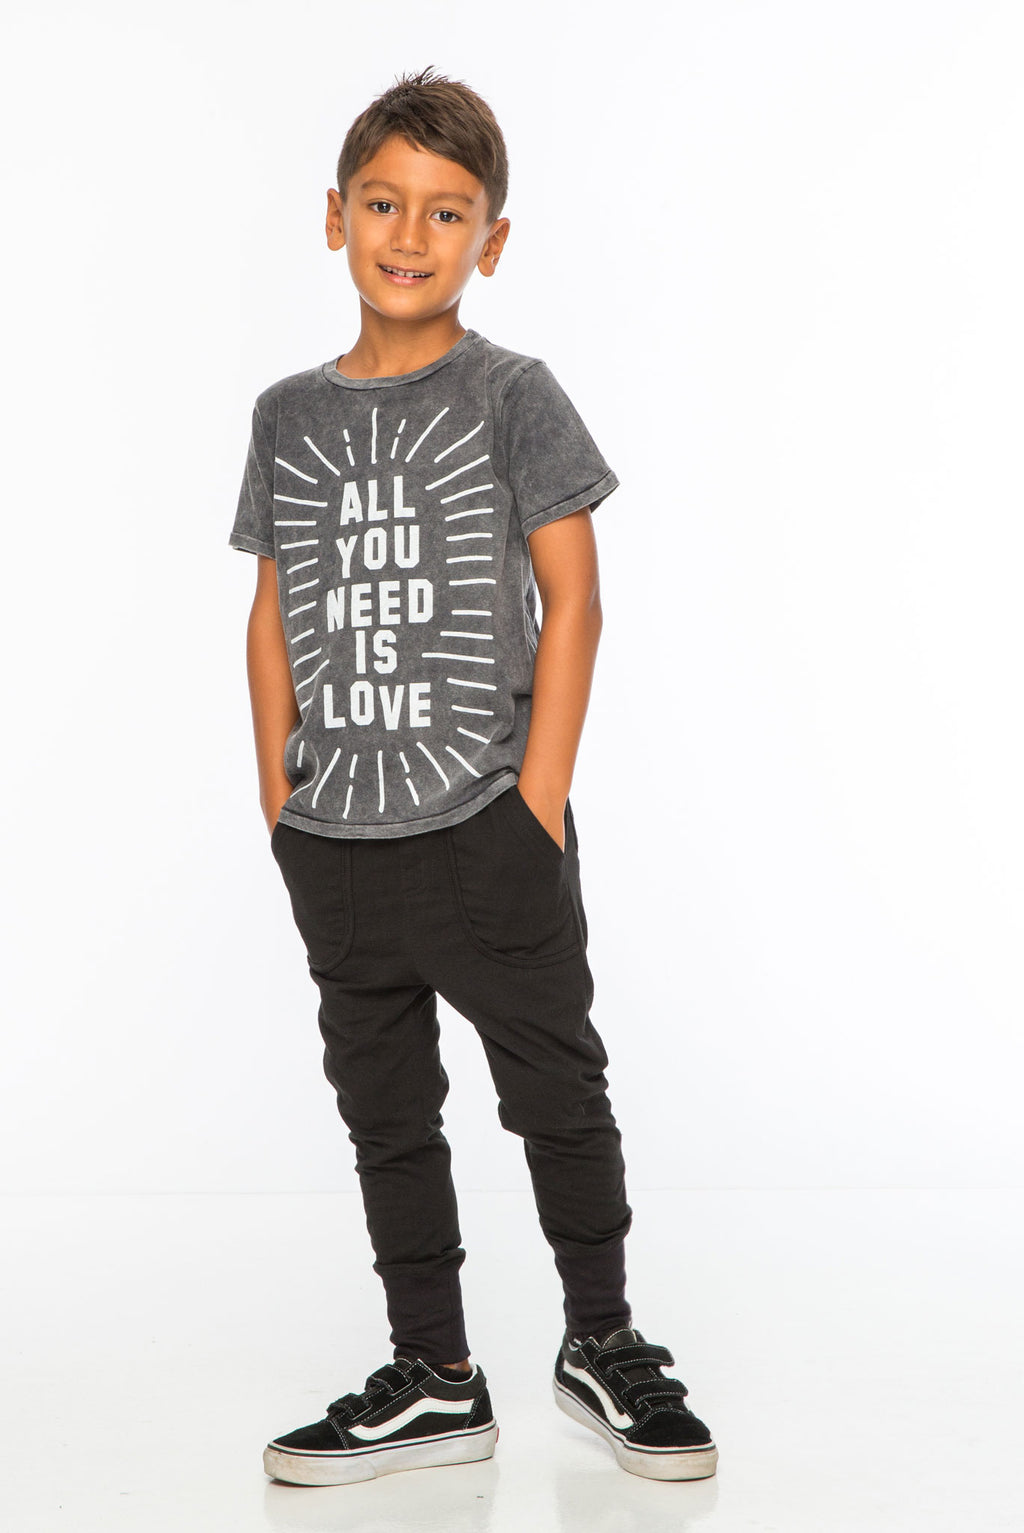 ALL YOU NEED IS LOVE S/S ROUND NECK T CHARCOAL - Zuttion